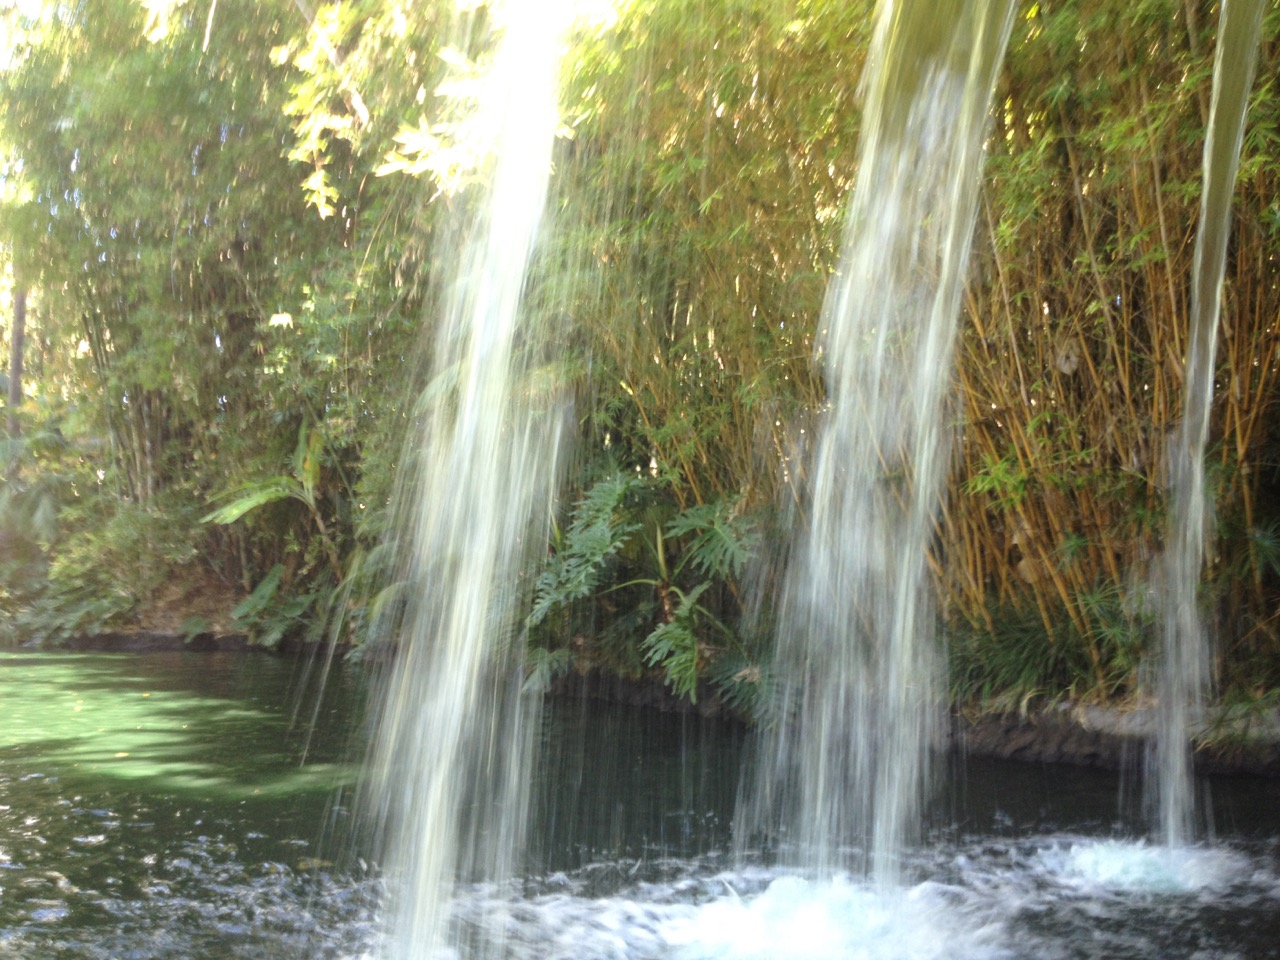 The backside of water in the original Schweitzer Falls at Disneyland's Jungle Cruise. Photo by J. Jeff Kober